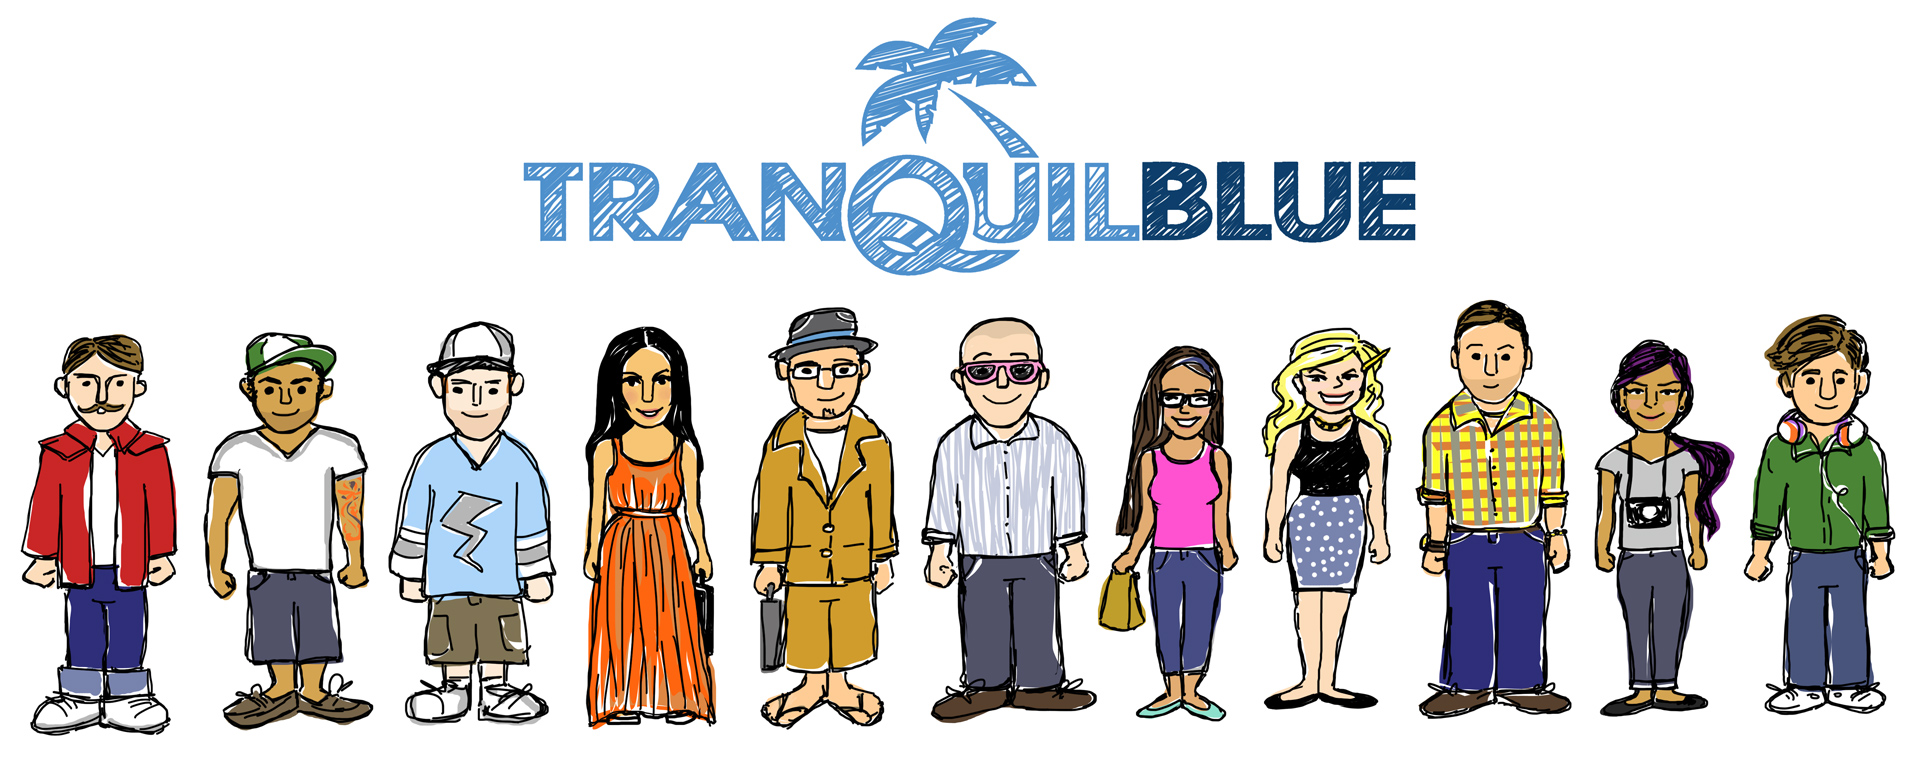 Tranquil Blue Team Illustration